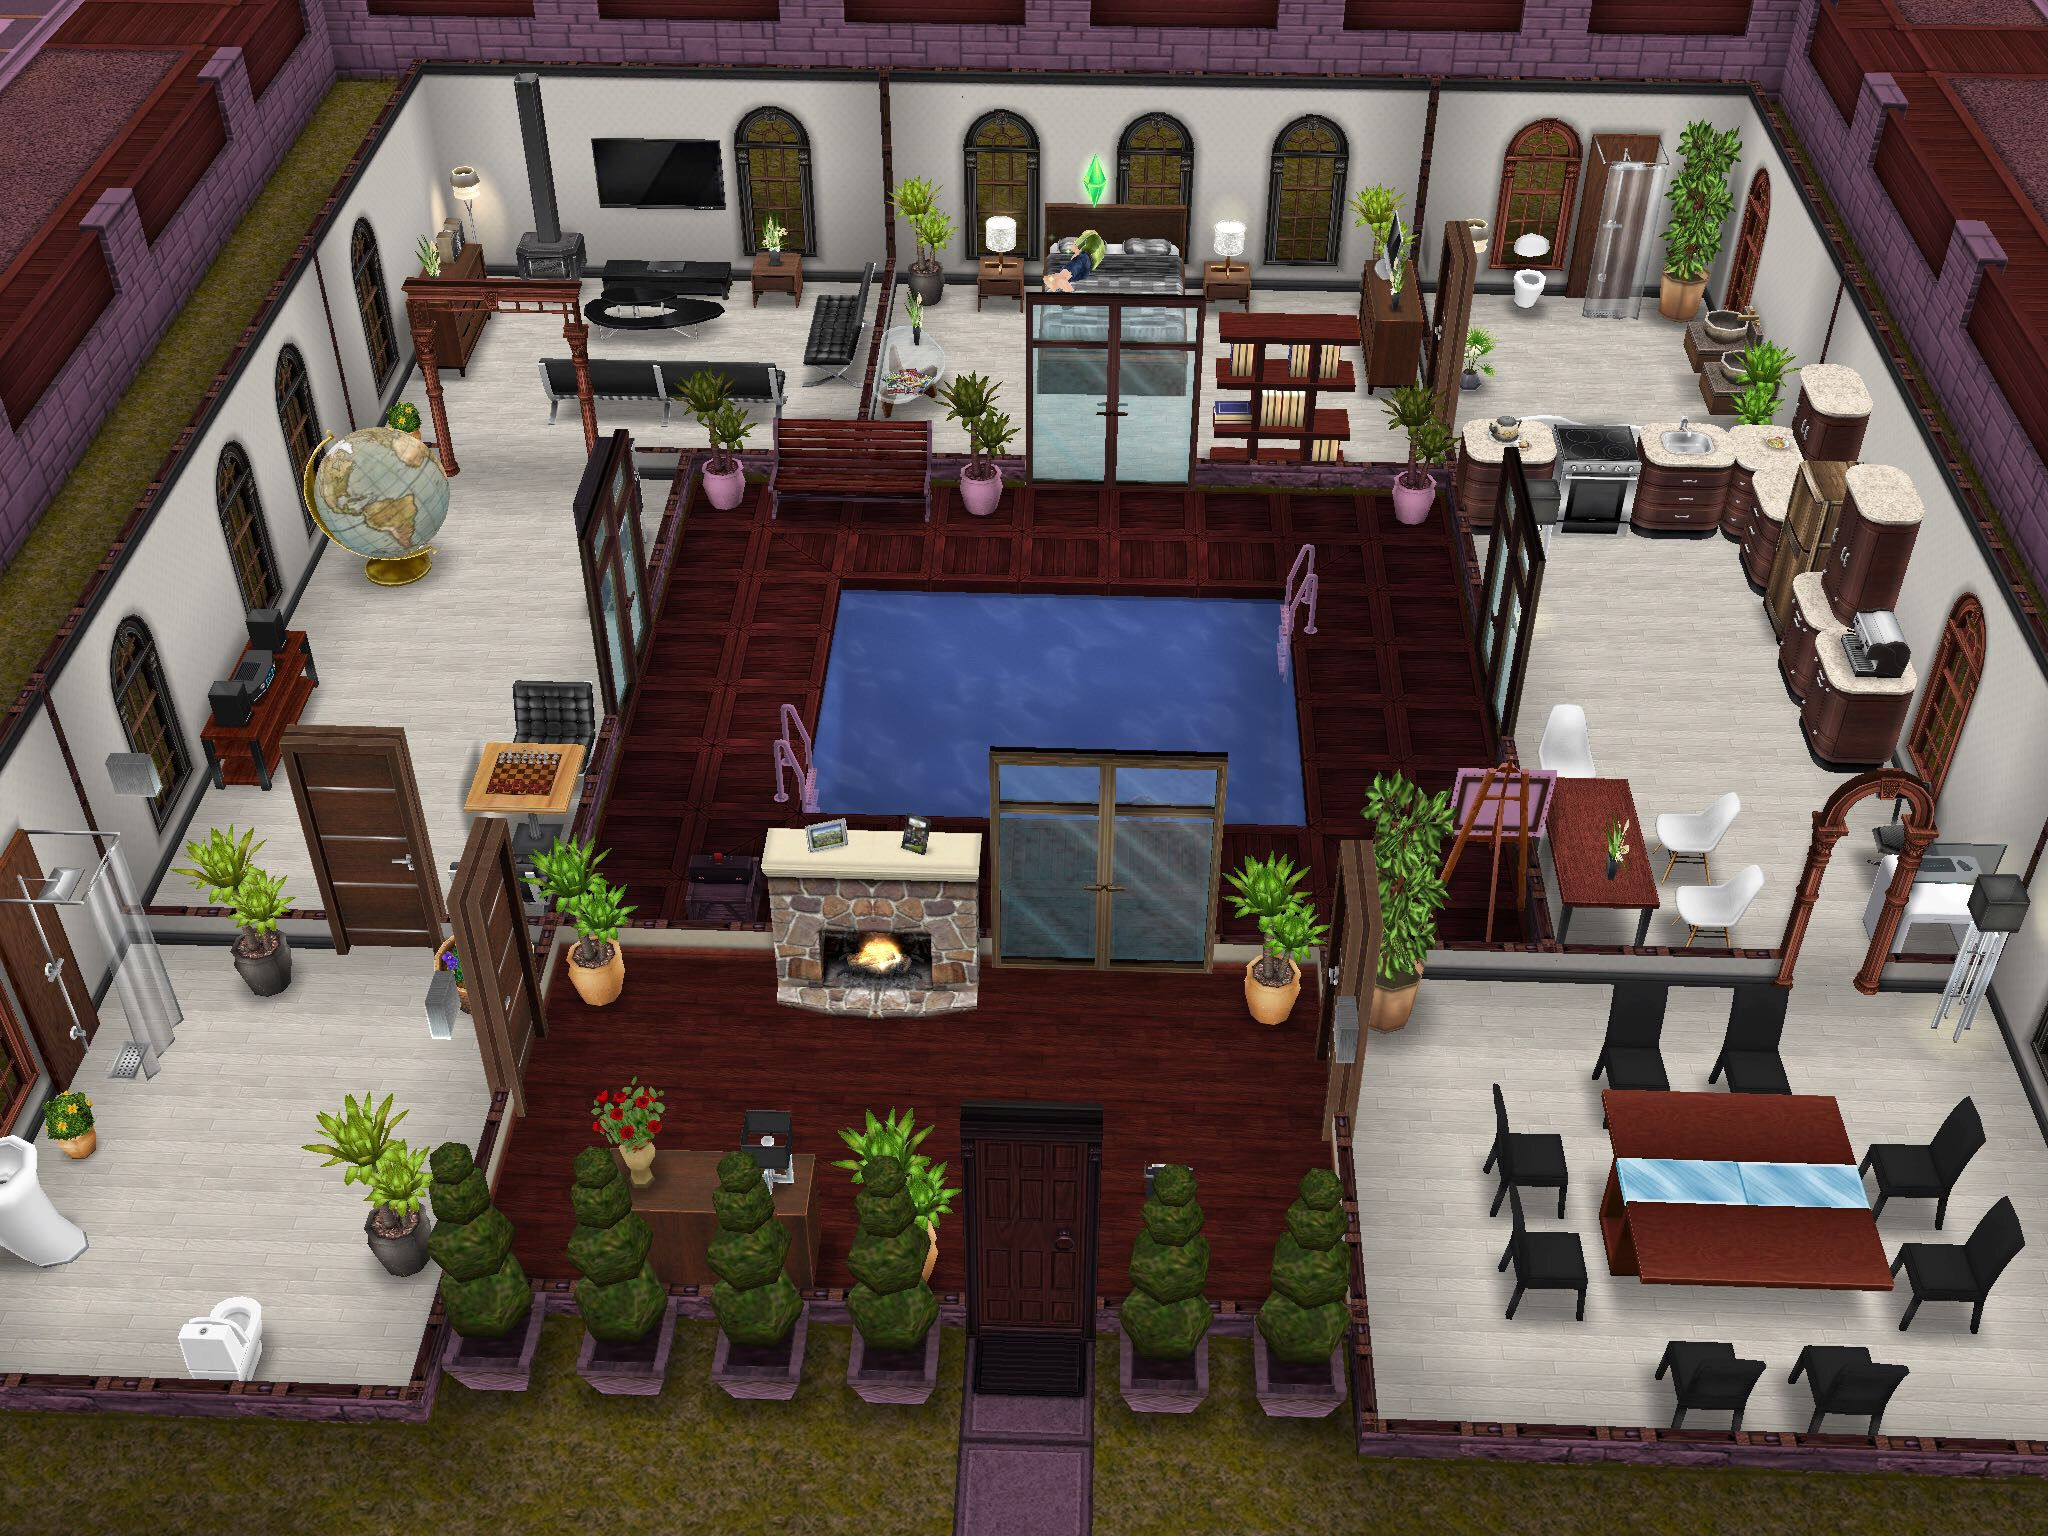 sims simsfreeplay freeplay sims pinterest sims and house